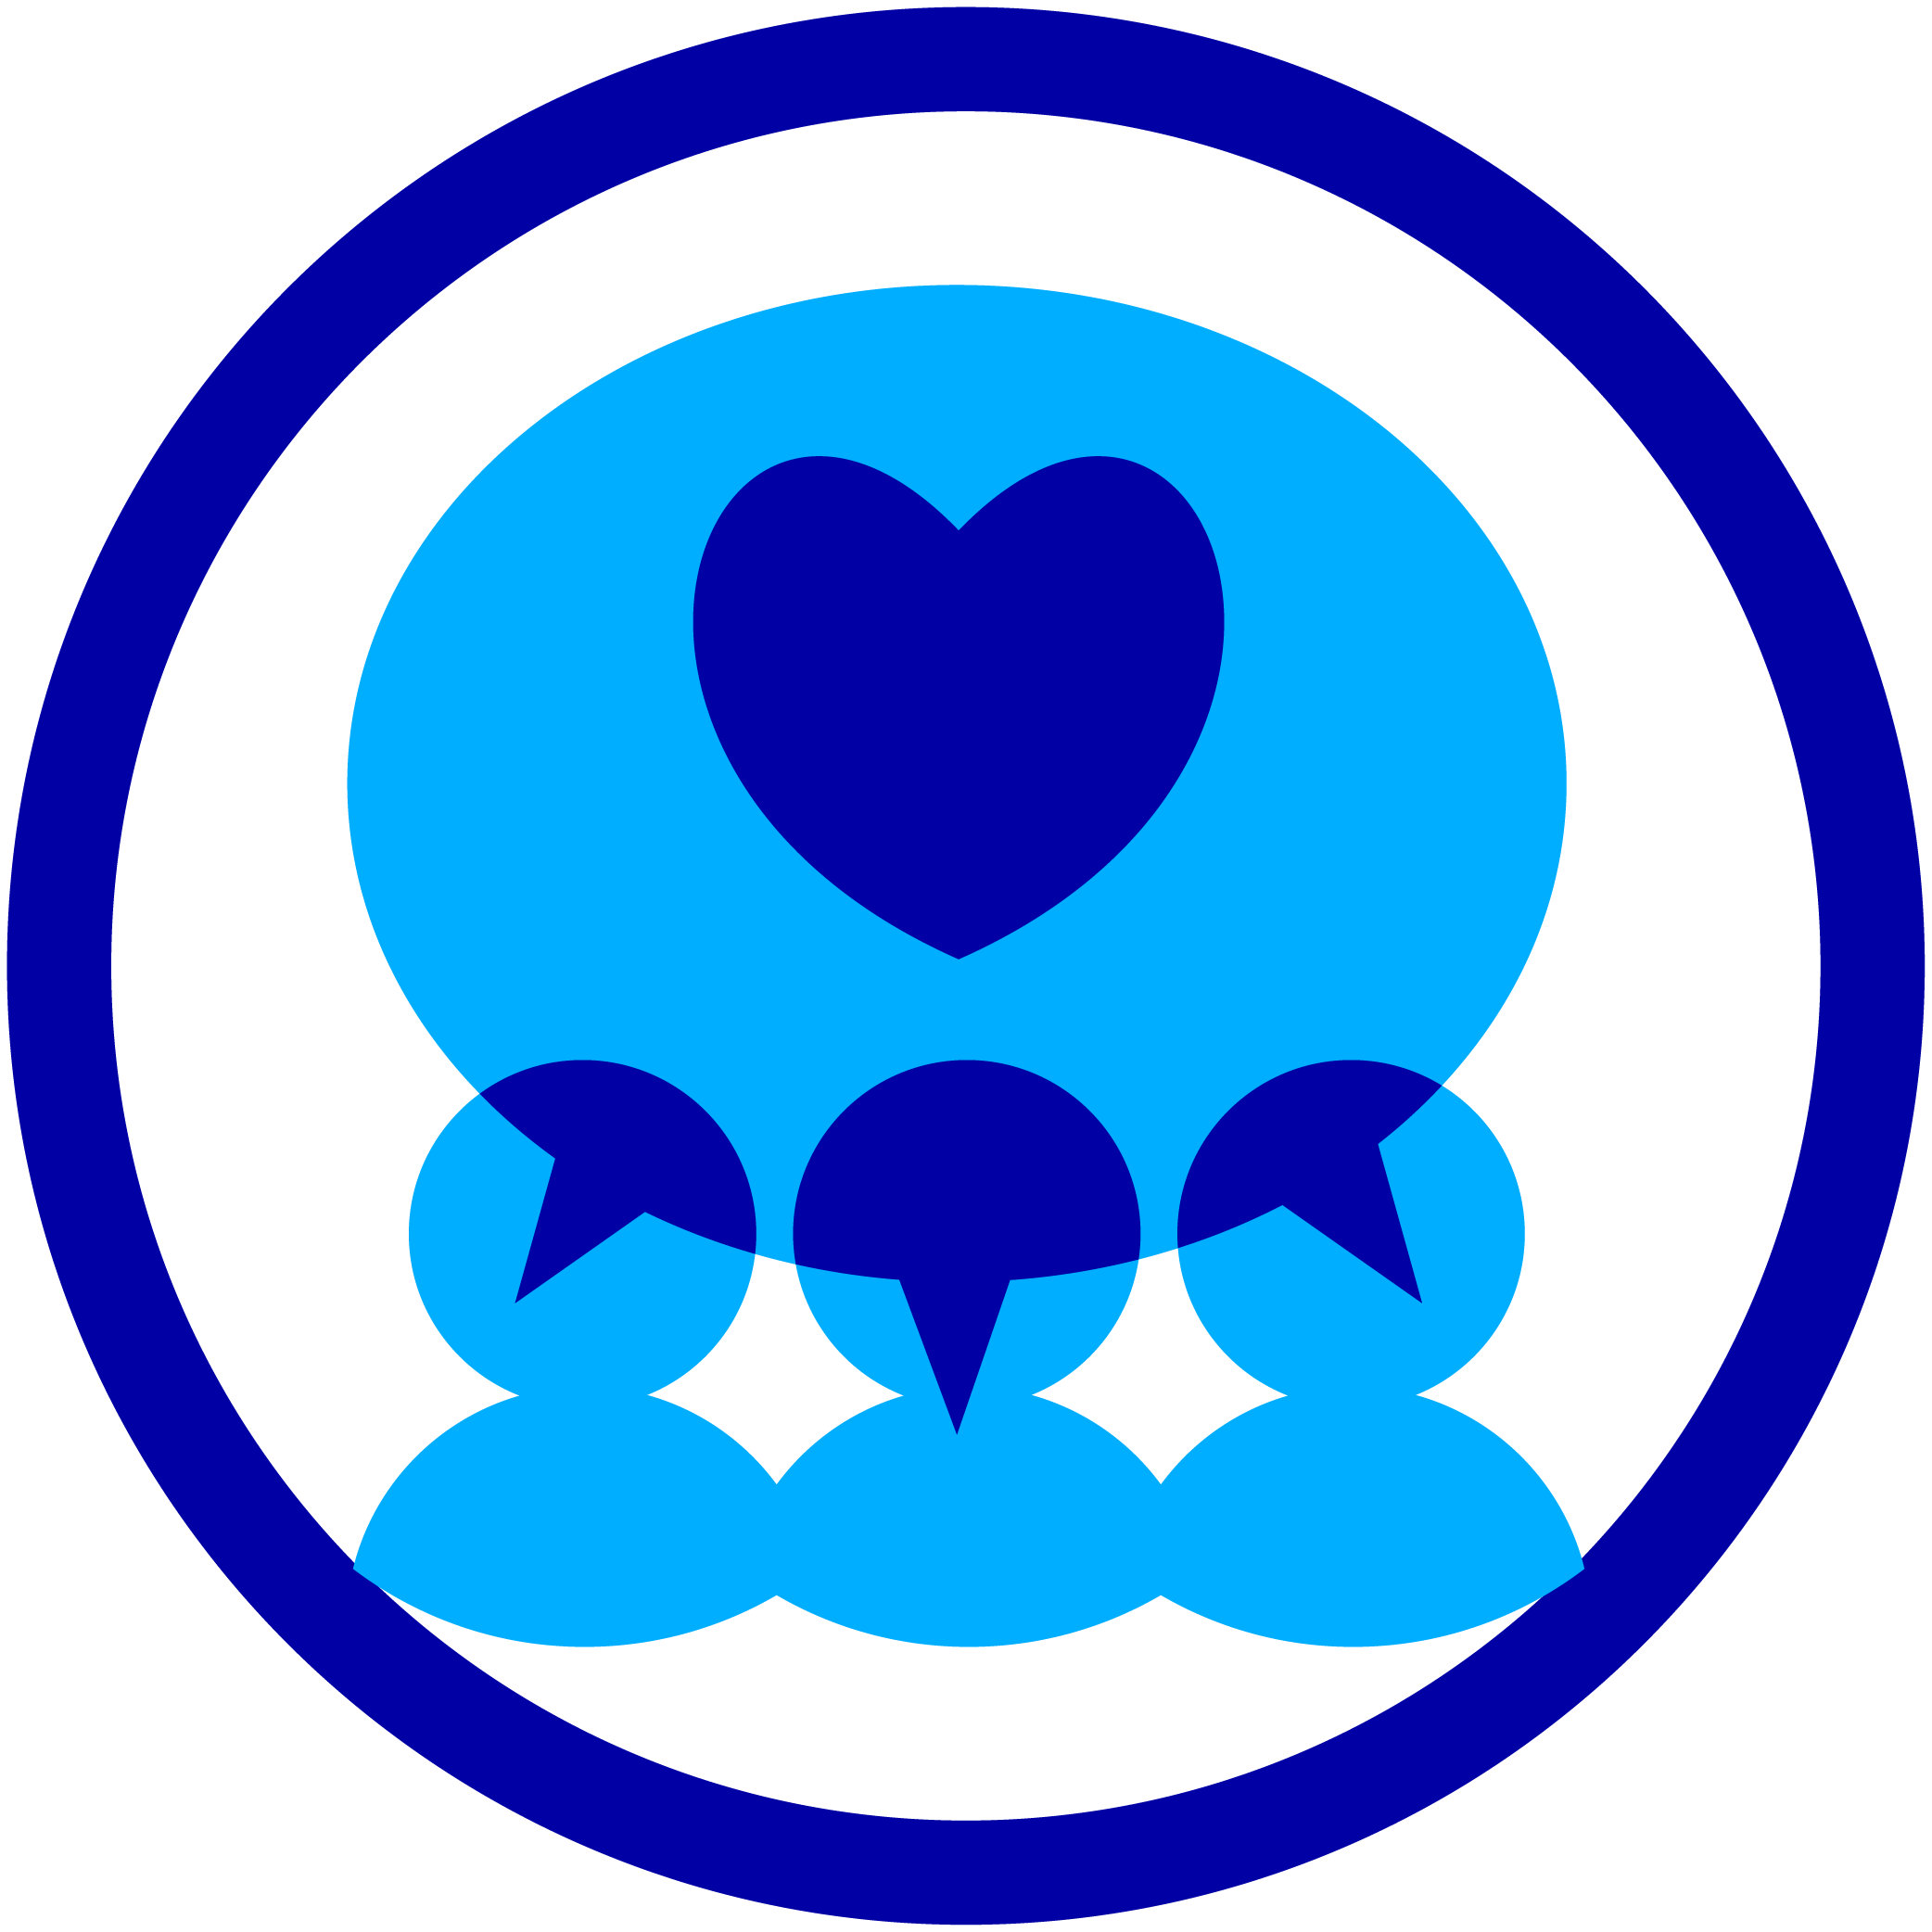 https://fr.fi-group.com/wp-content/uploads/2021/02/blue-icons-set_1-54.png